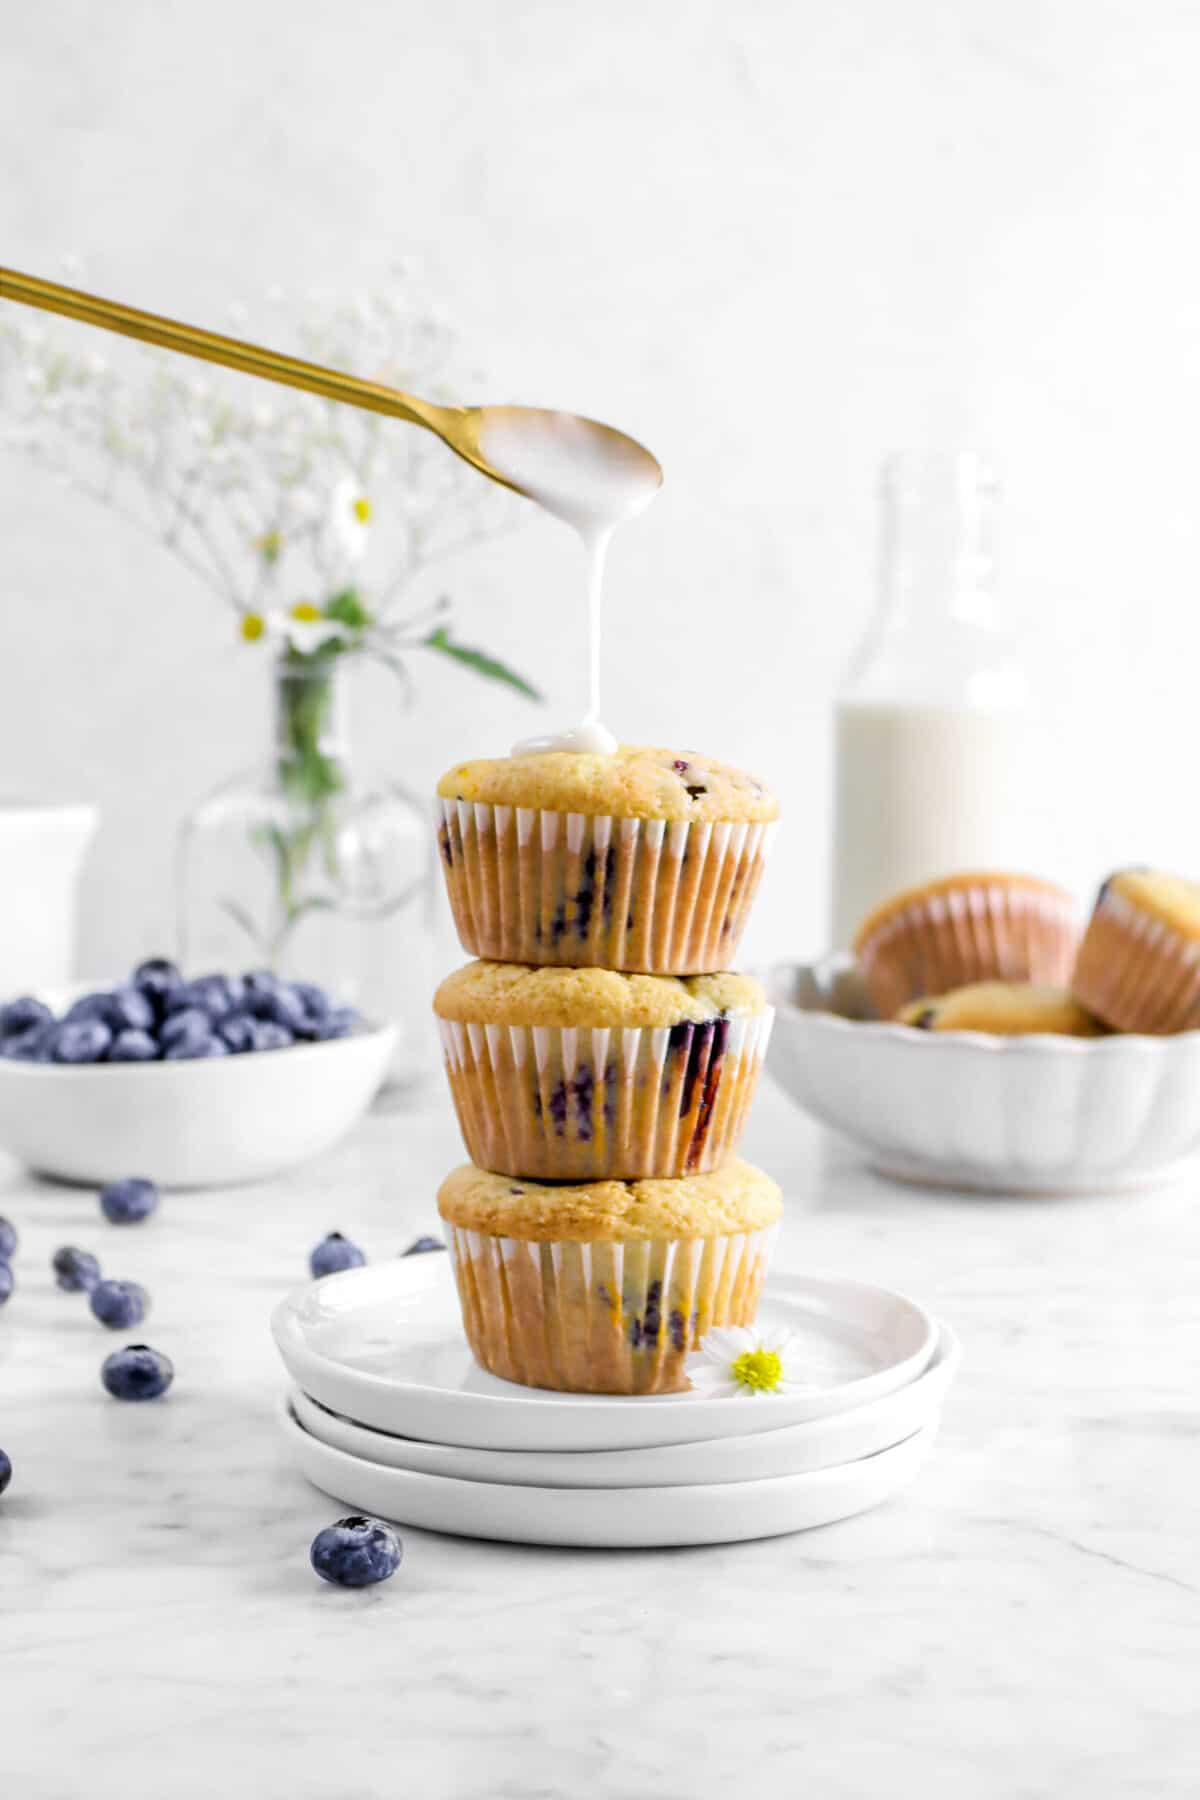 glaze being drizzled onto three stacked blueberry muffins with flowers, fresh blueberries, more muffins, and glass of milk behind